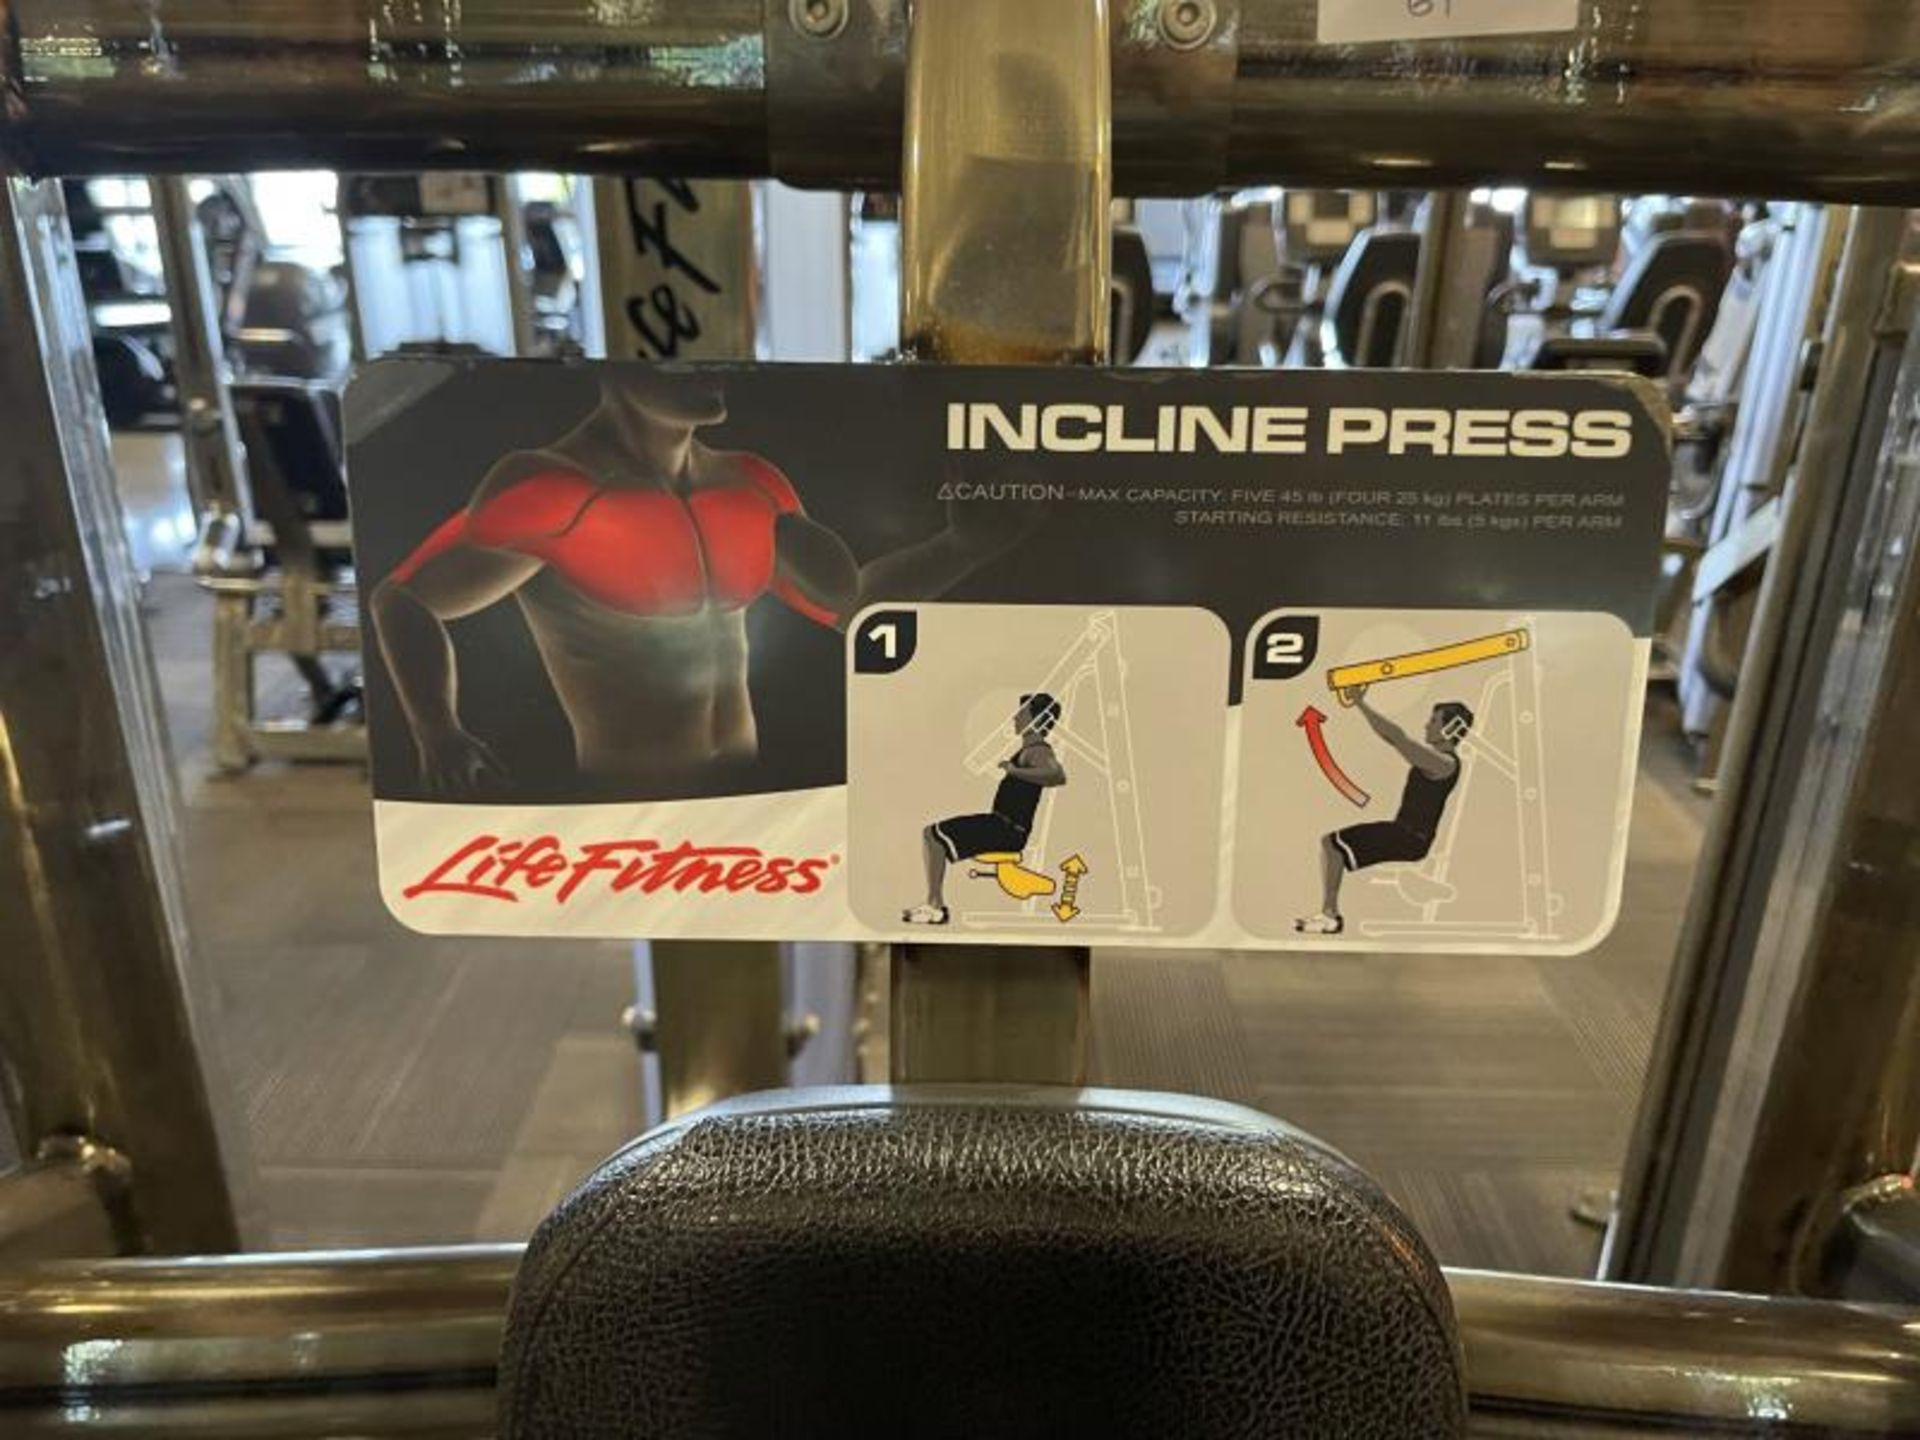 Incline Press with Iron Grip Weight Plates M: SPLIP - Image 6 of 6